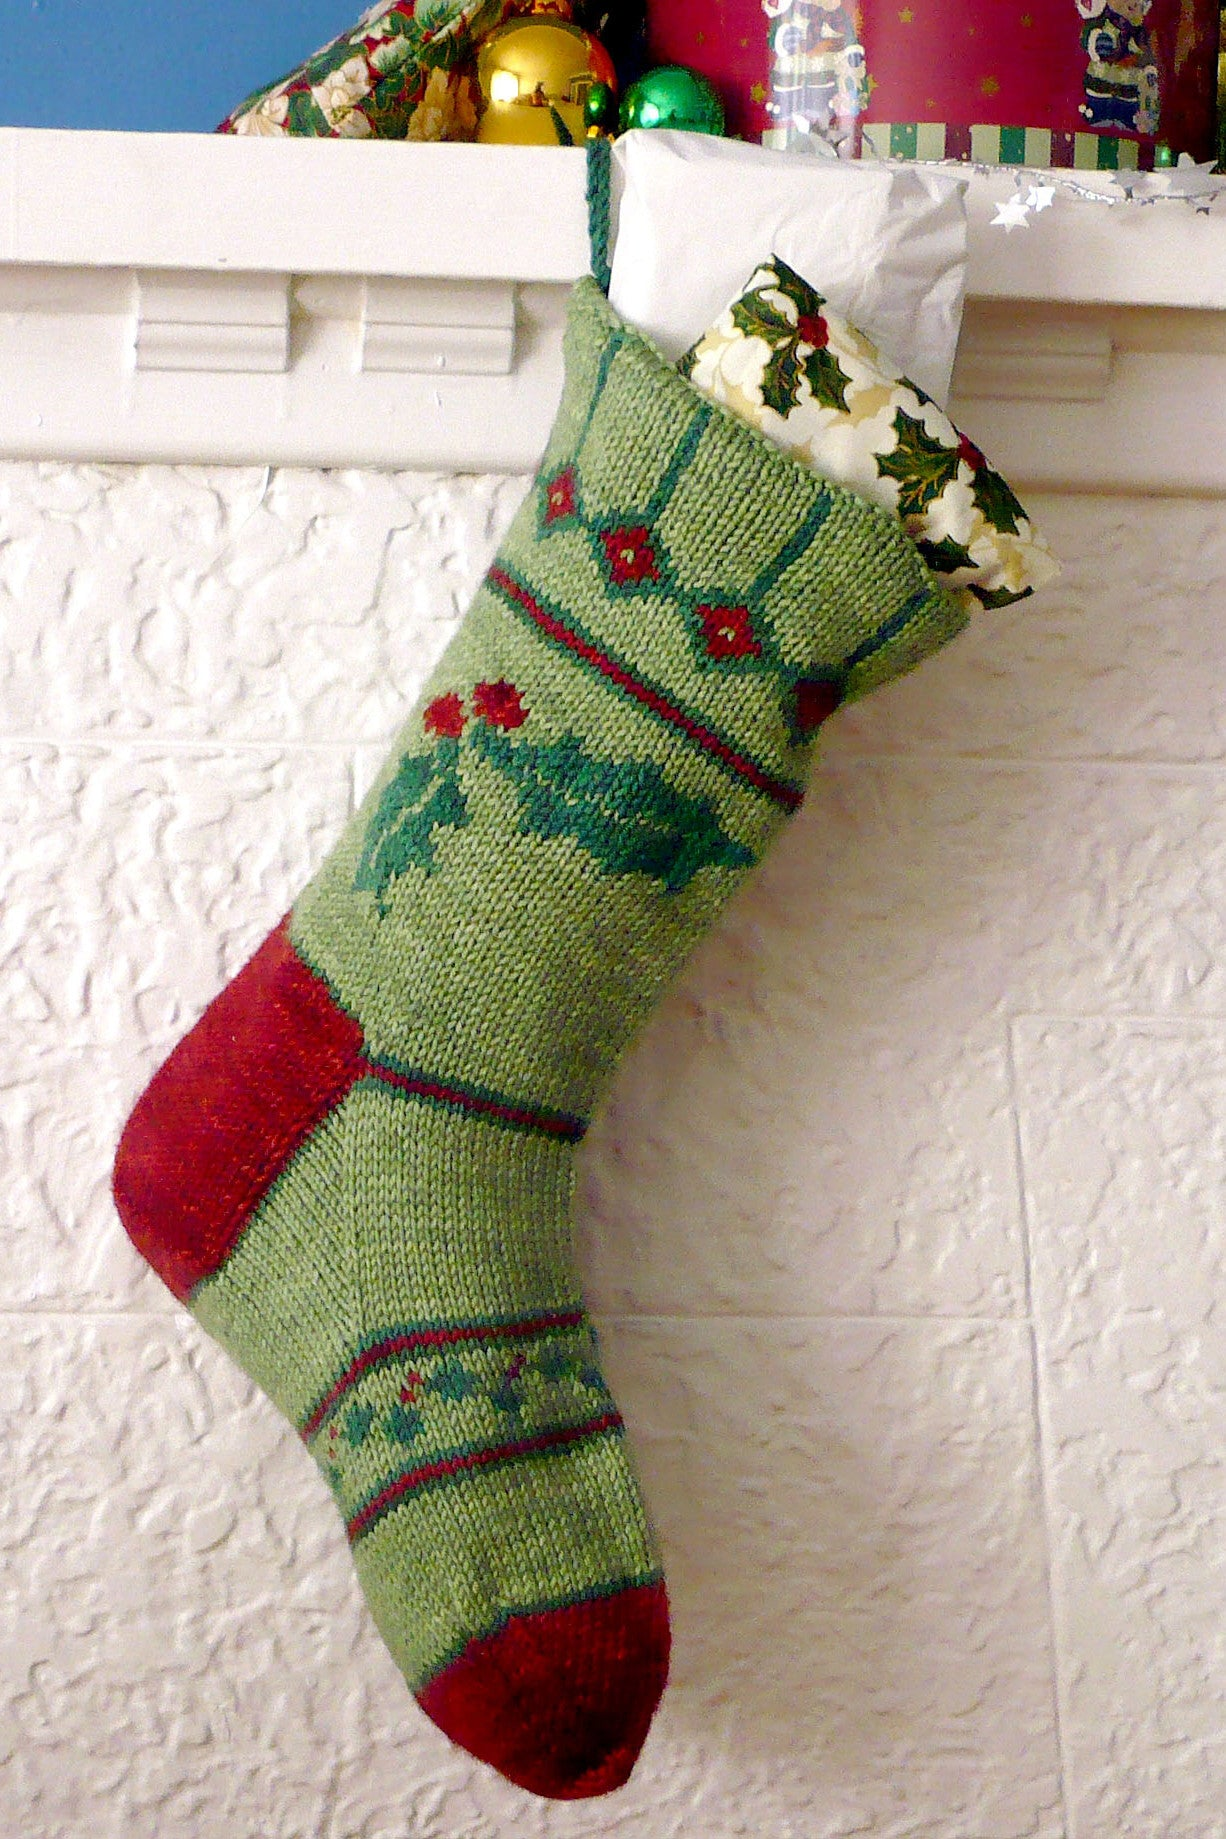 Knitting Christmas Stocking Pattern : Holly Christmas Stocking knitting pattern - Sweet Paprika Designs